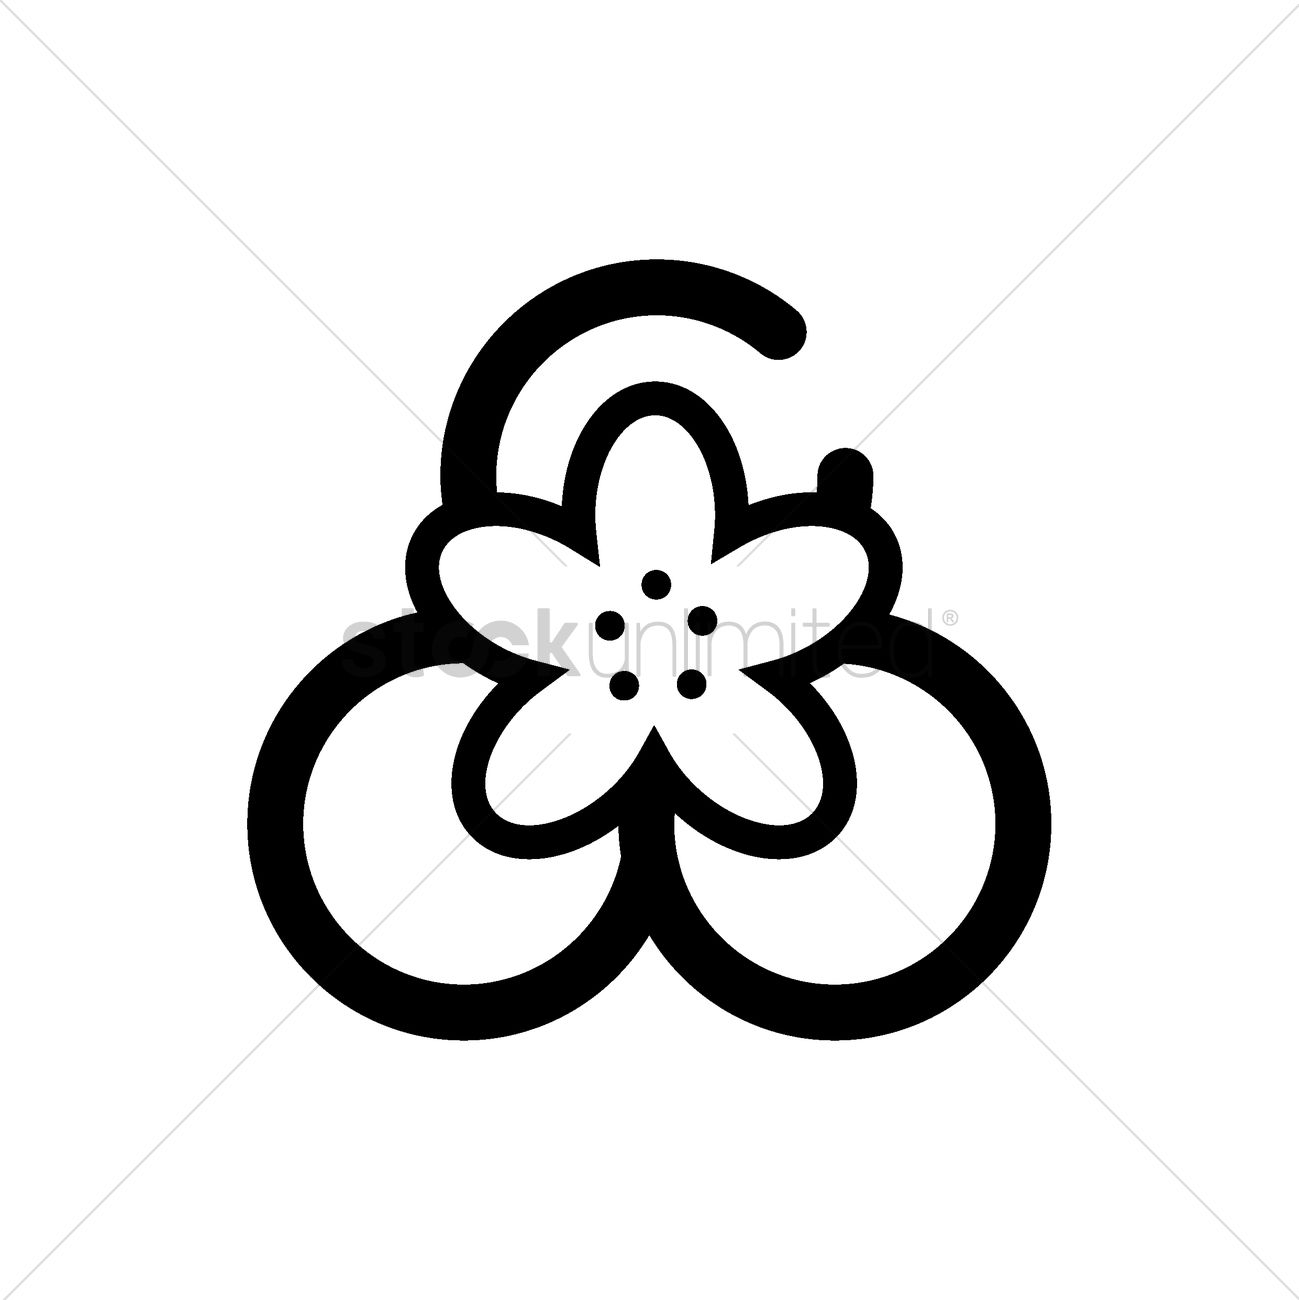 Top view of lotus flower on leaf vector image 1981313 stockunlimited top view of lotus flower on leaf vector graphic izmirmasajfo